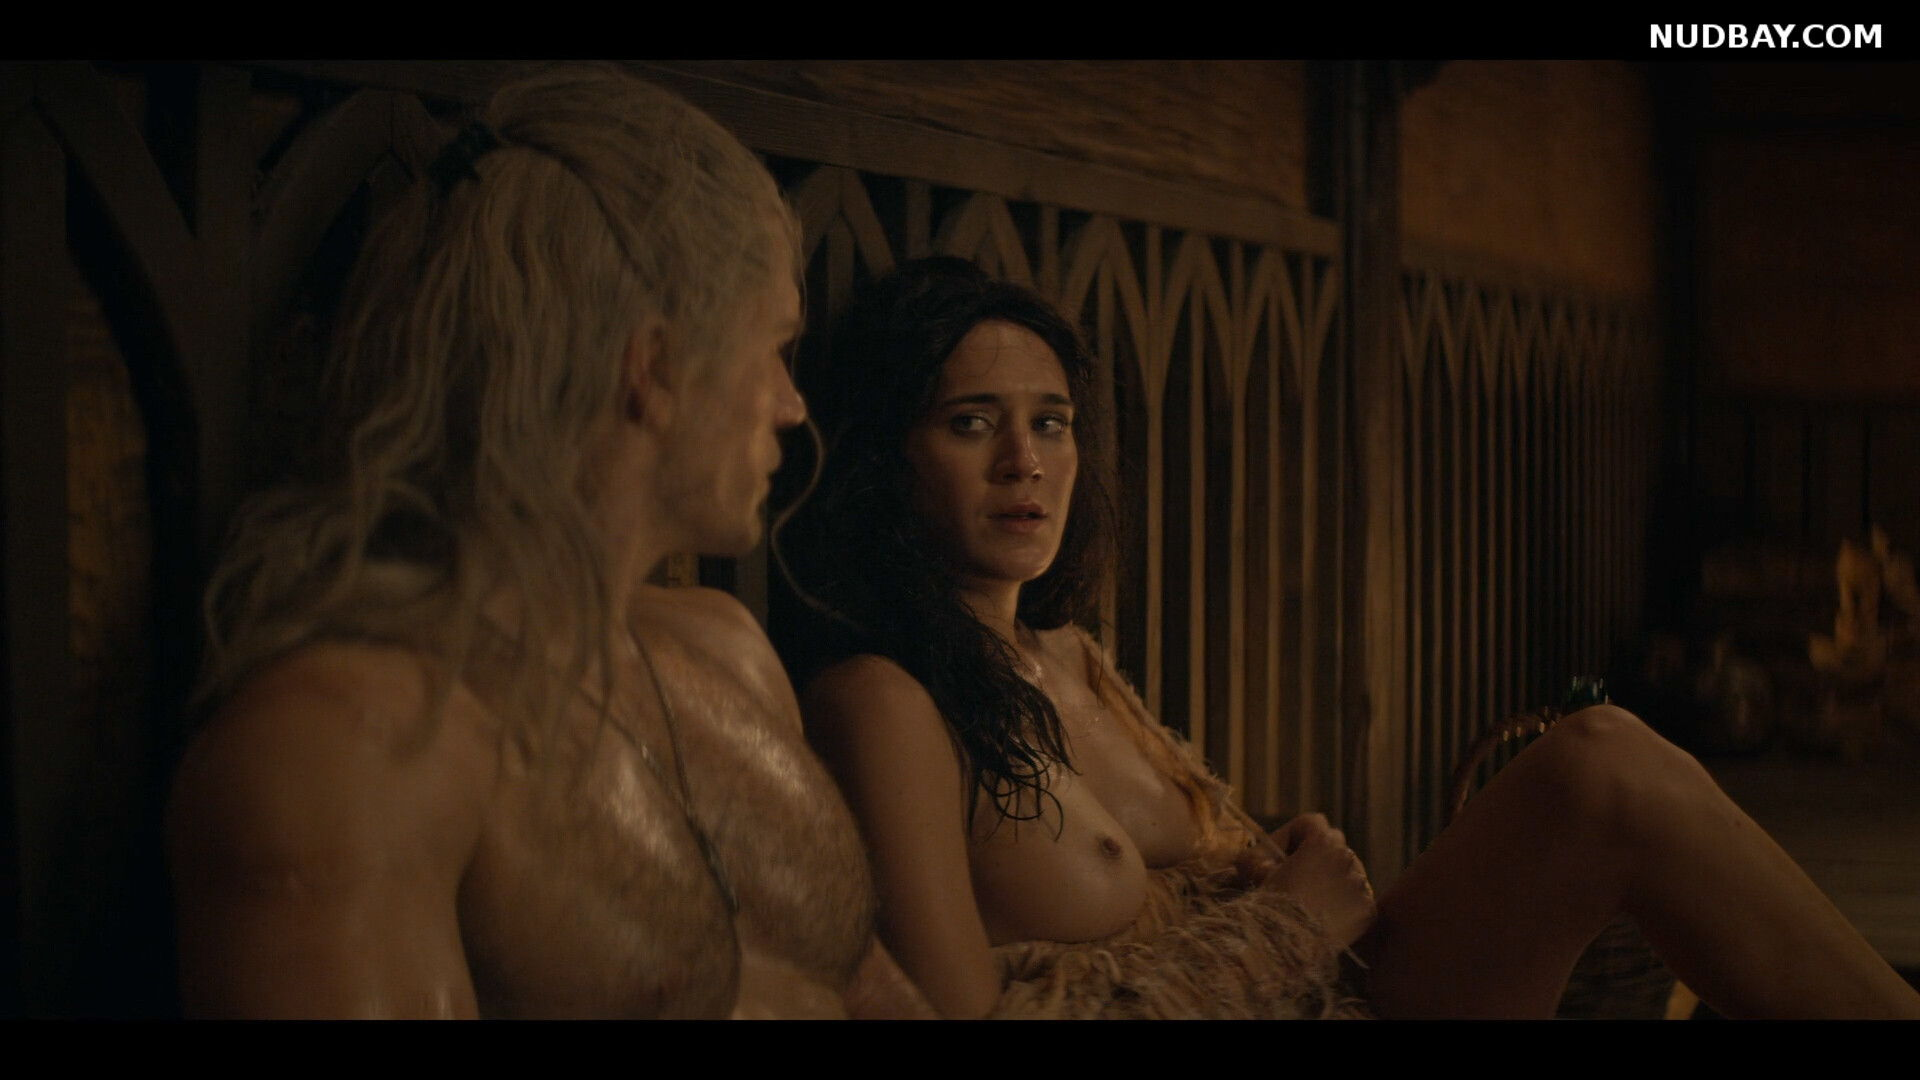 Imogen Daines nude in The Witcher S01 (2019)